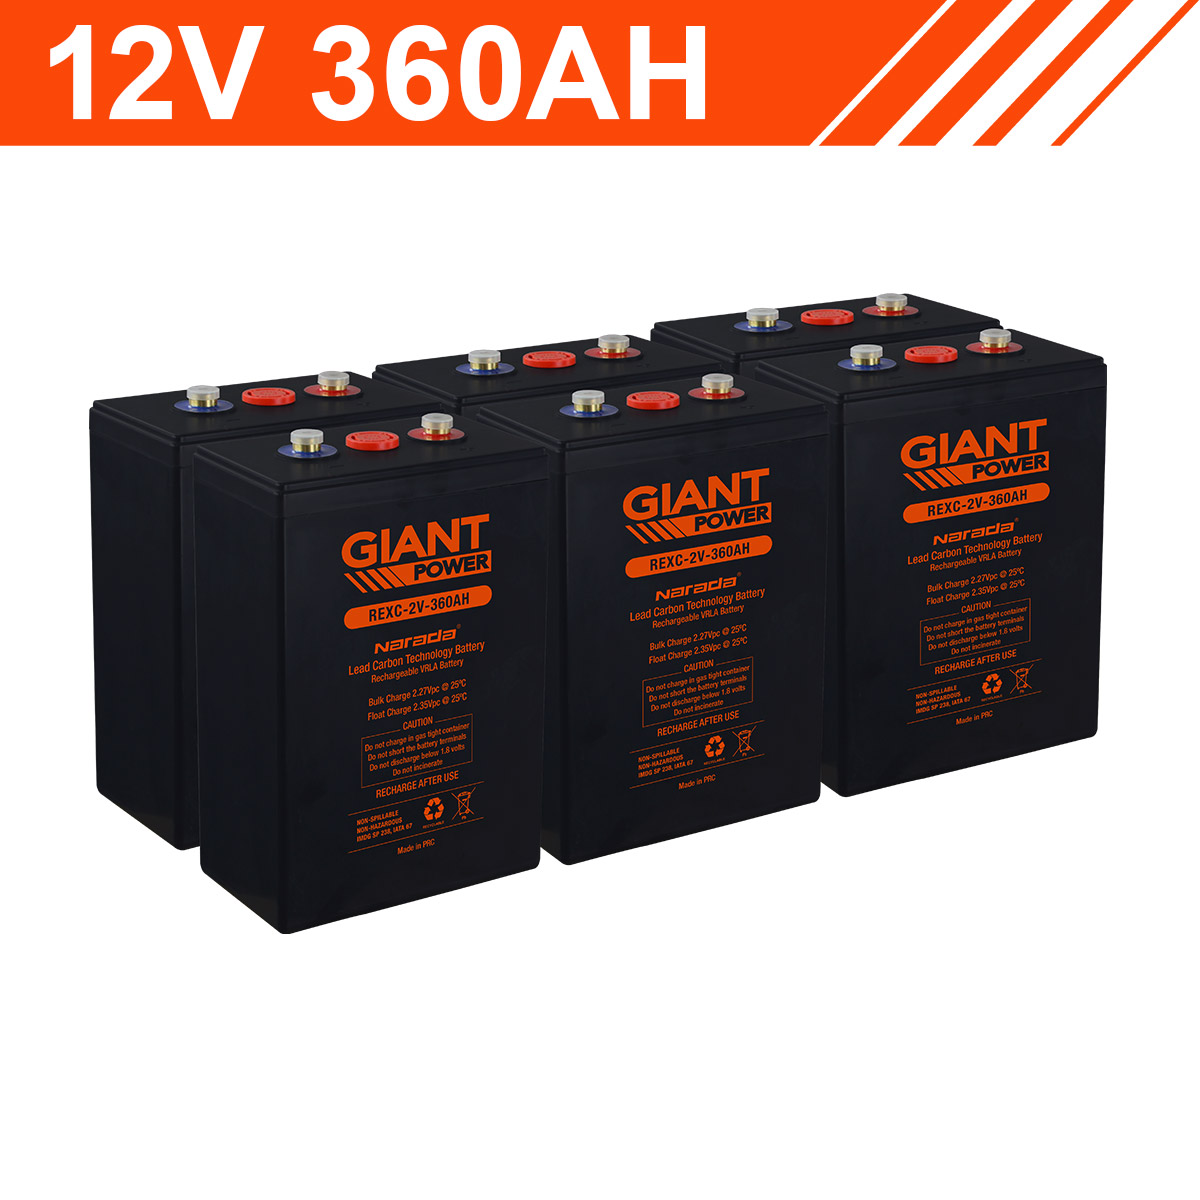 360ah Lead Carbon Battery Bank 2v Cells